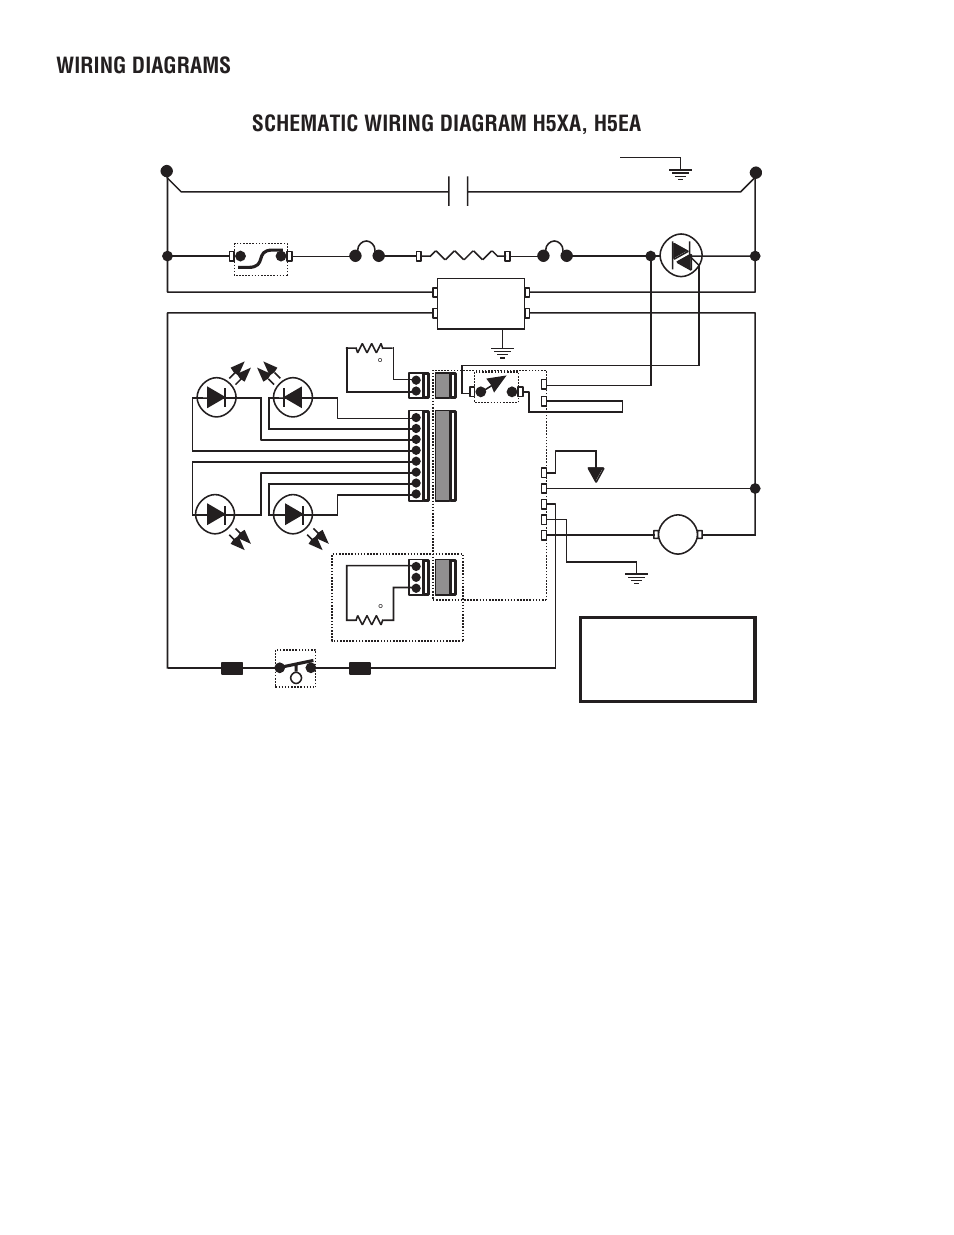 230 volts a c 2 wire single phase, Schematic wiring diagram h5xa, h5ea, Wiring  diagrams | Bunn H5X User Manual | Page 22 / 22